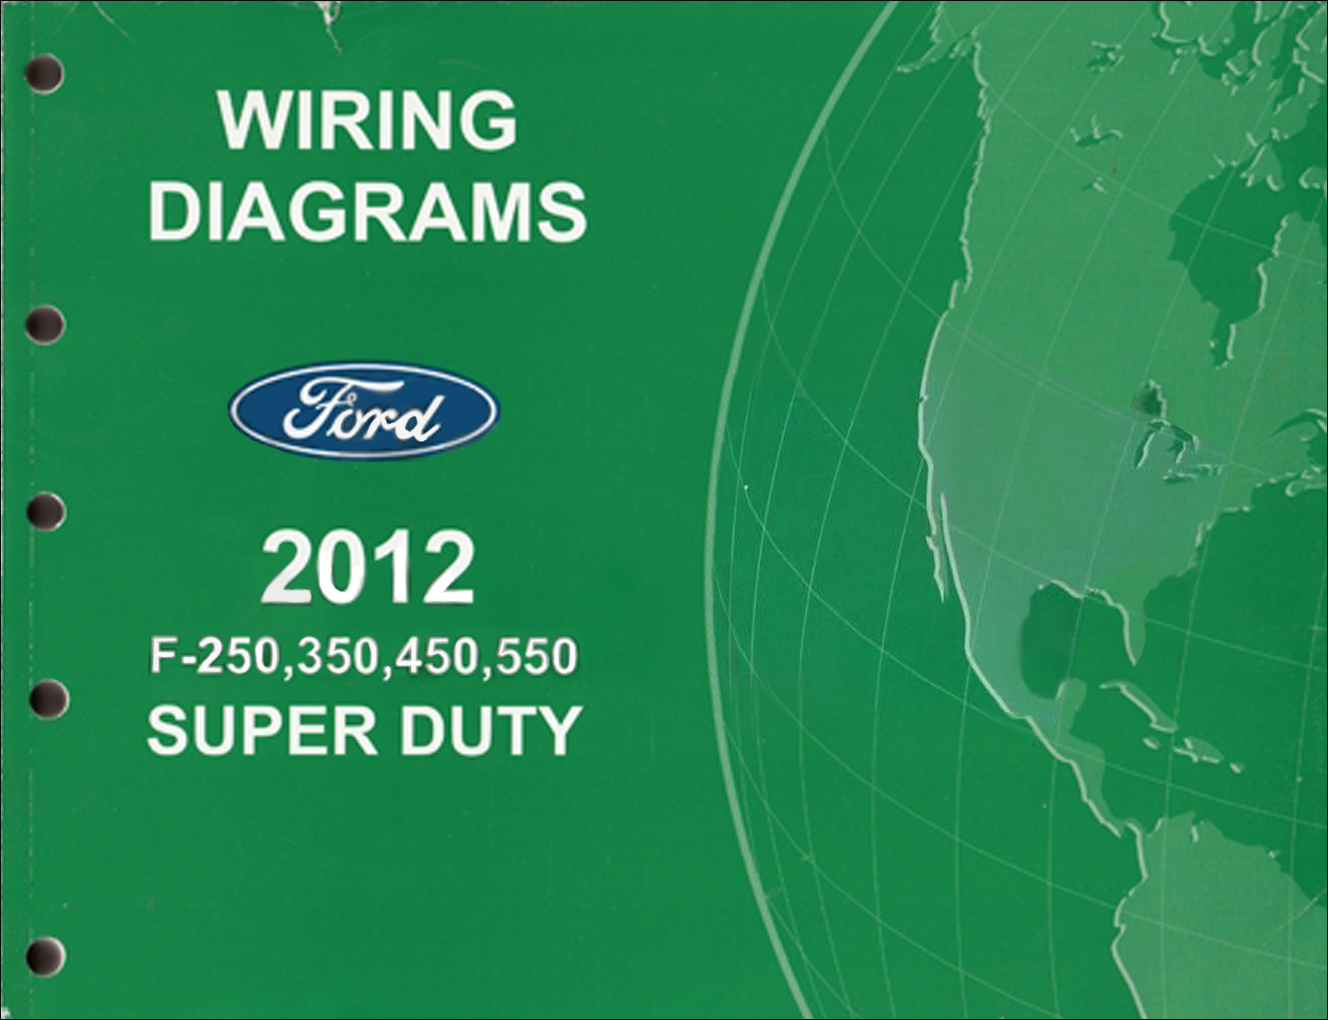 2012 ford f 250 thru 550 super duty wiring diagram manual original rh faxonautoliterature com 2005 f250 super duty wiring diagram ford super duty wiring schematic